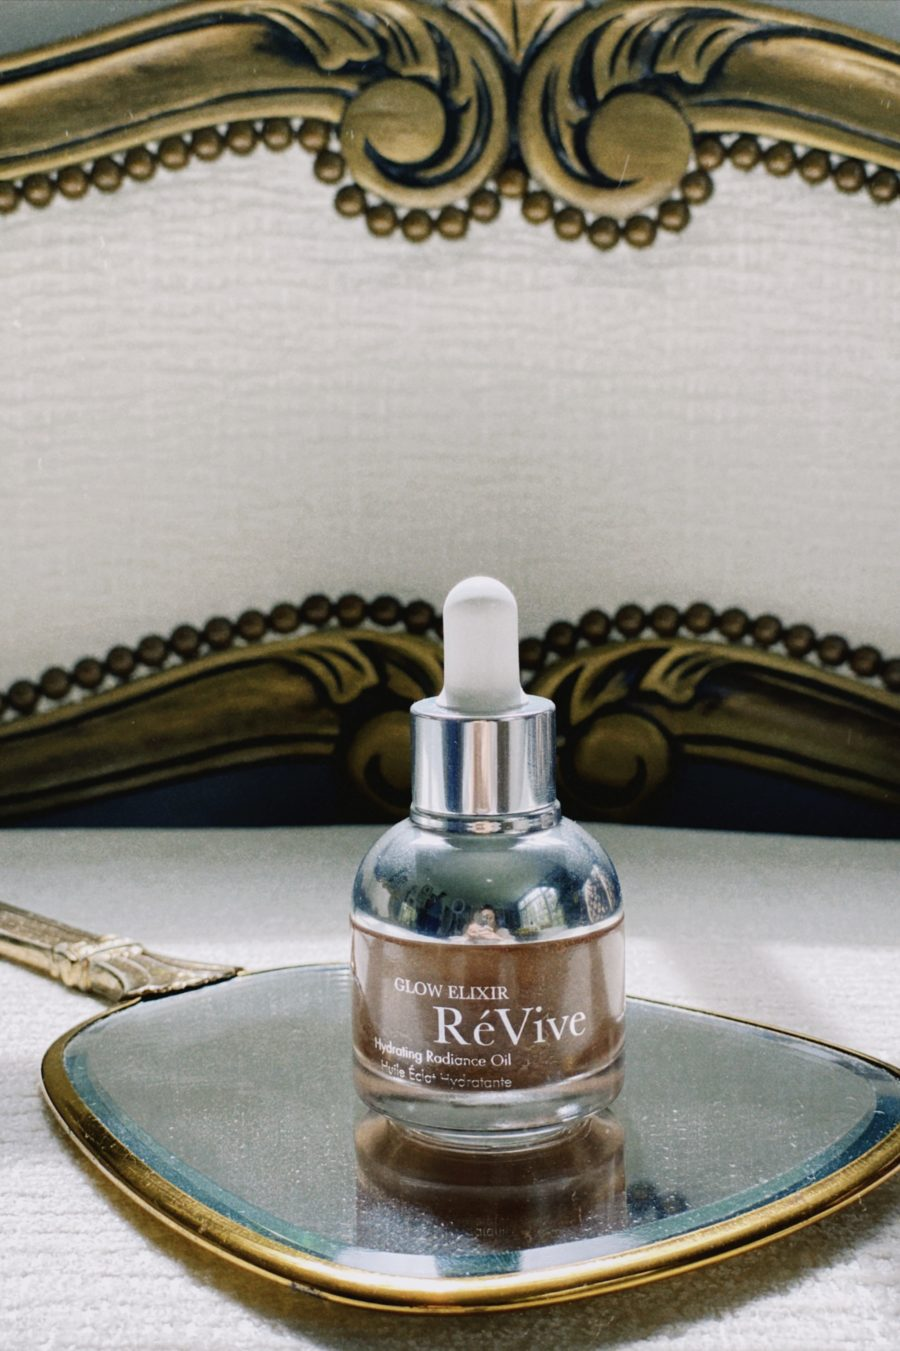 self-care guide featuring revive glow elixir // Jessica Wang - Notjessfashion.com